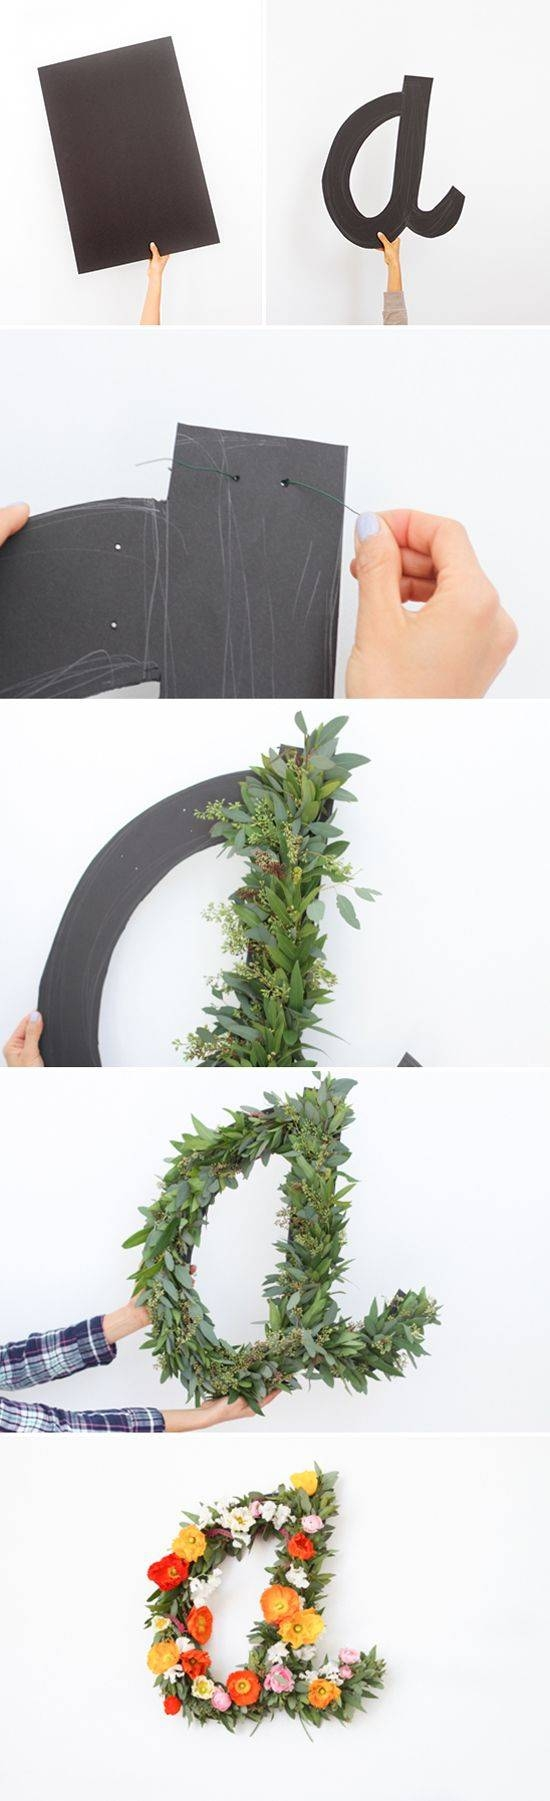 25+ Unique Letter Wall Art Ideas On Pinterest | Letters On Wall With 2018 Floral & Plant Wall Art (View 3 of 25)